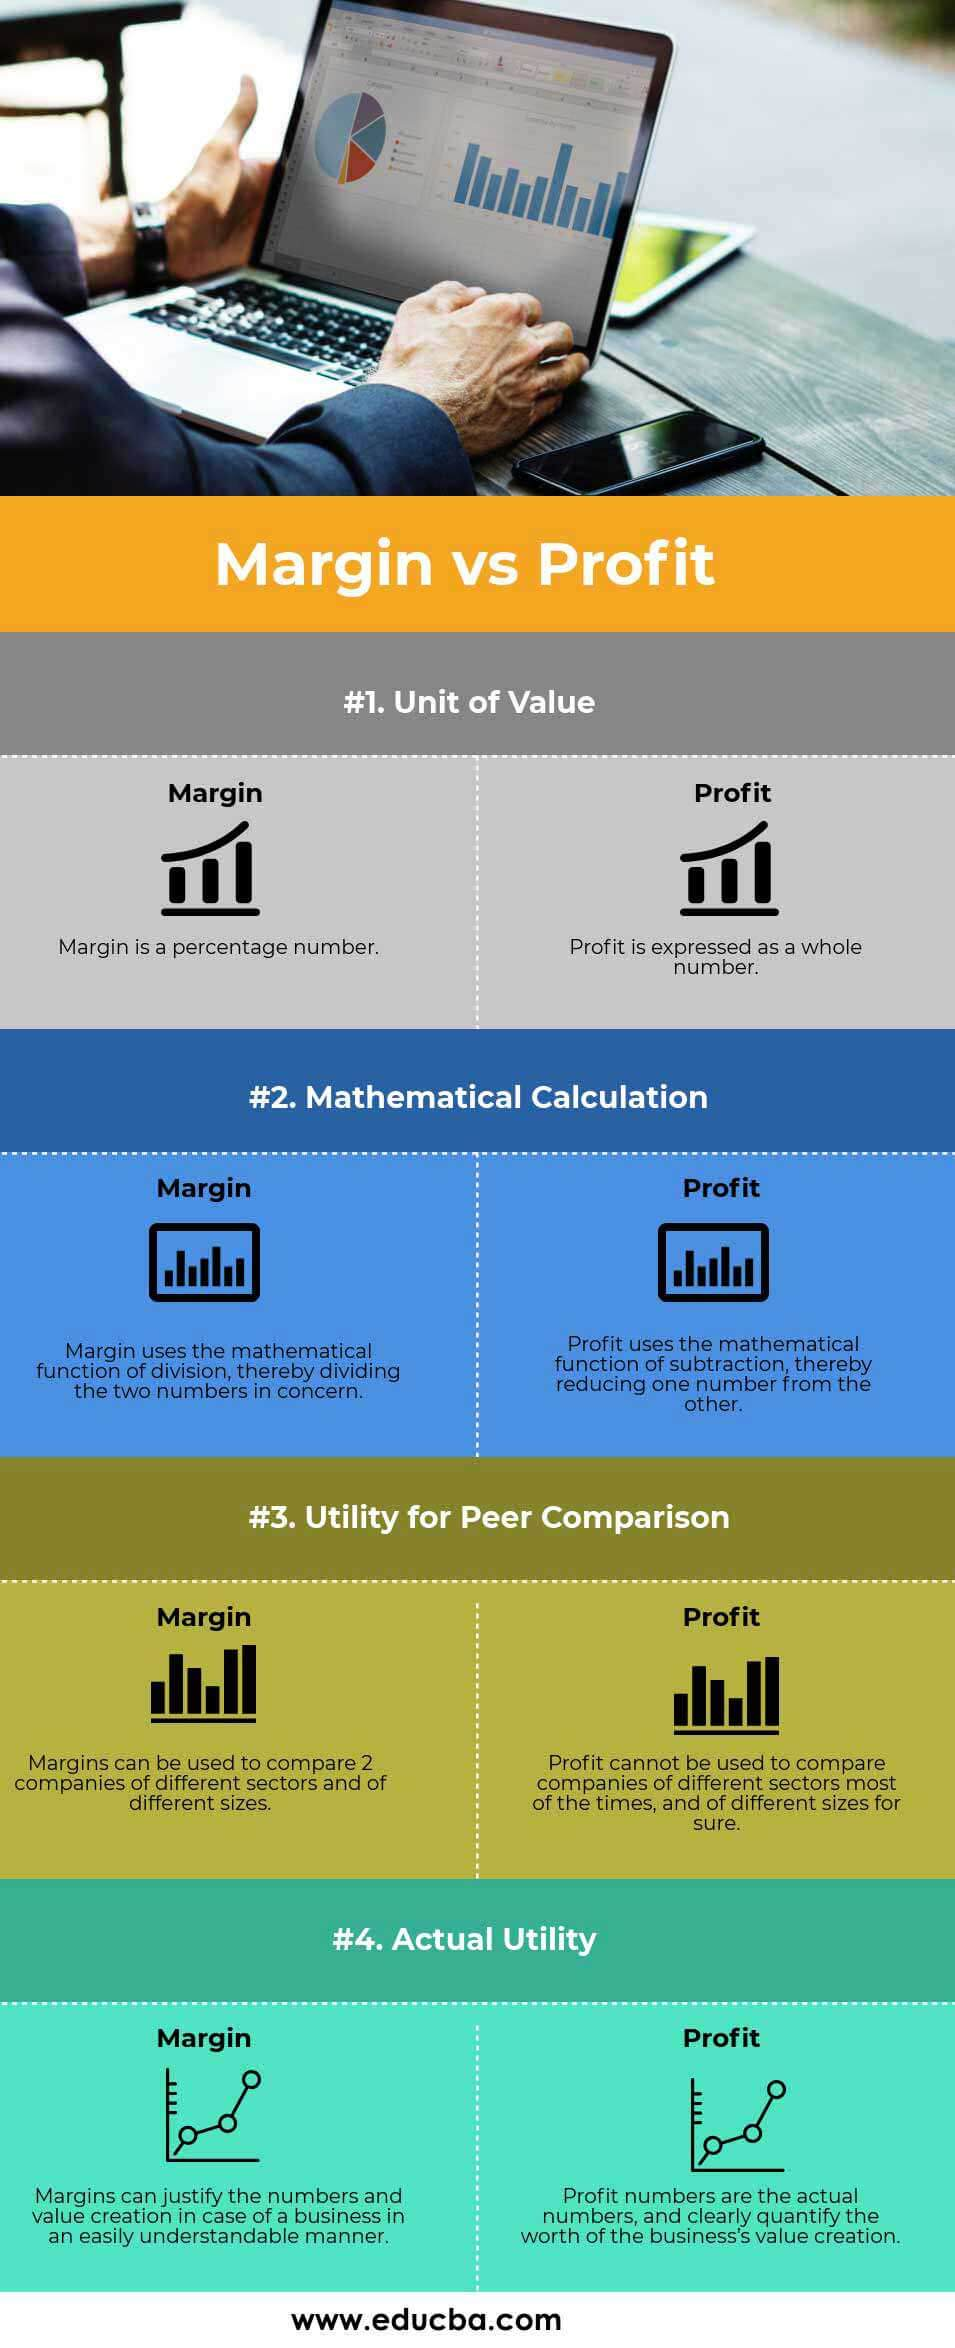 Margin vs Profit info